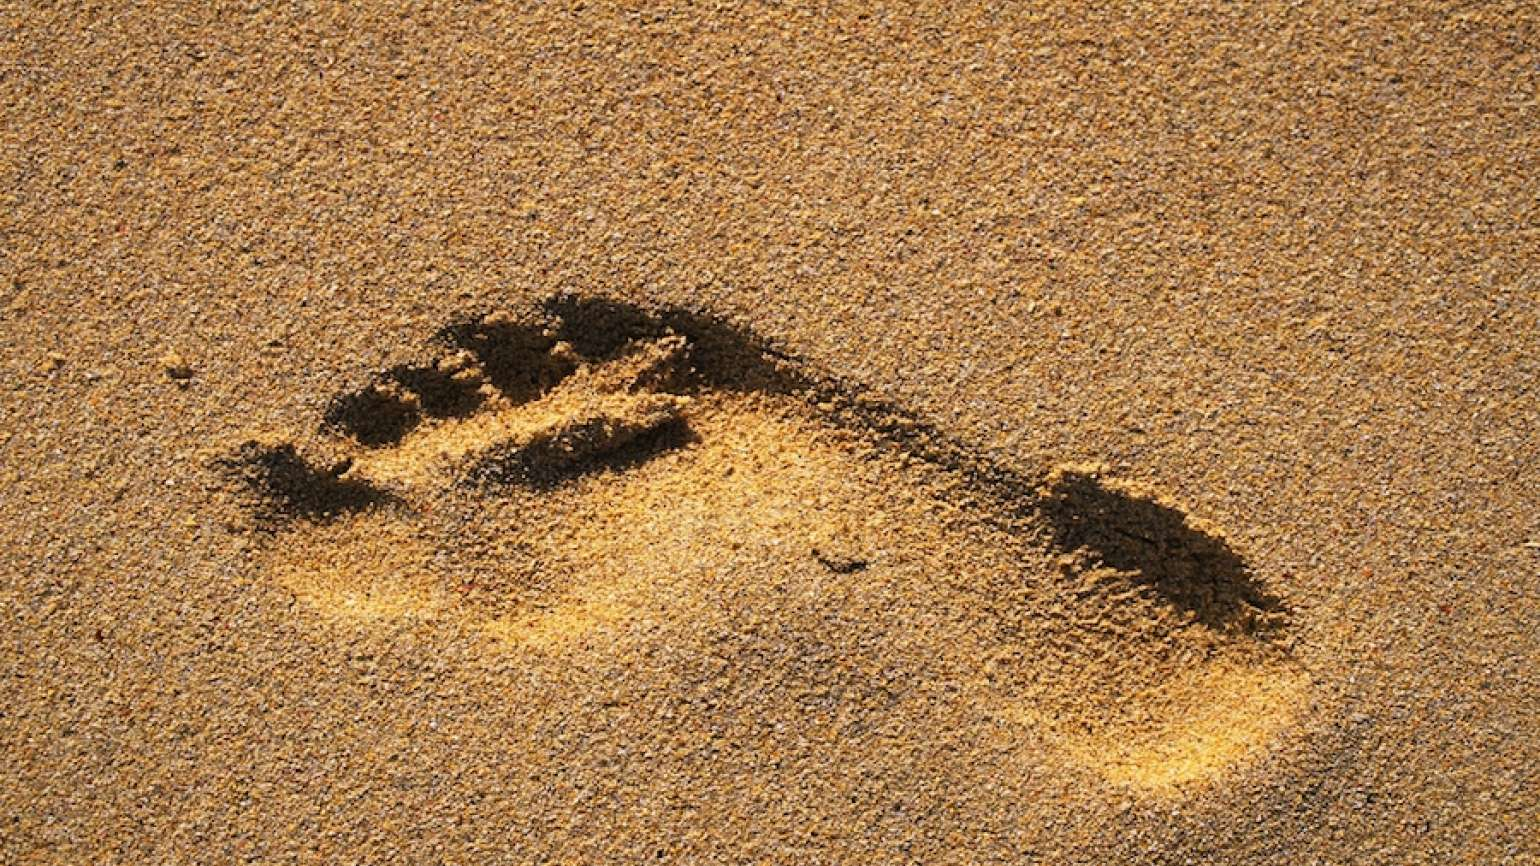 Footprint in the sand. Thinkstock.